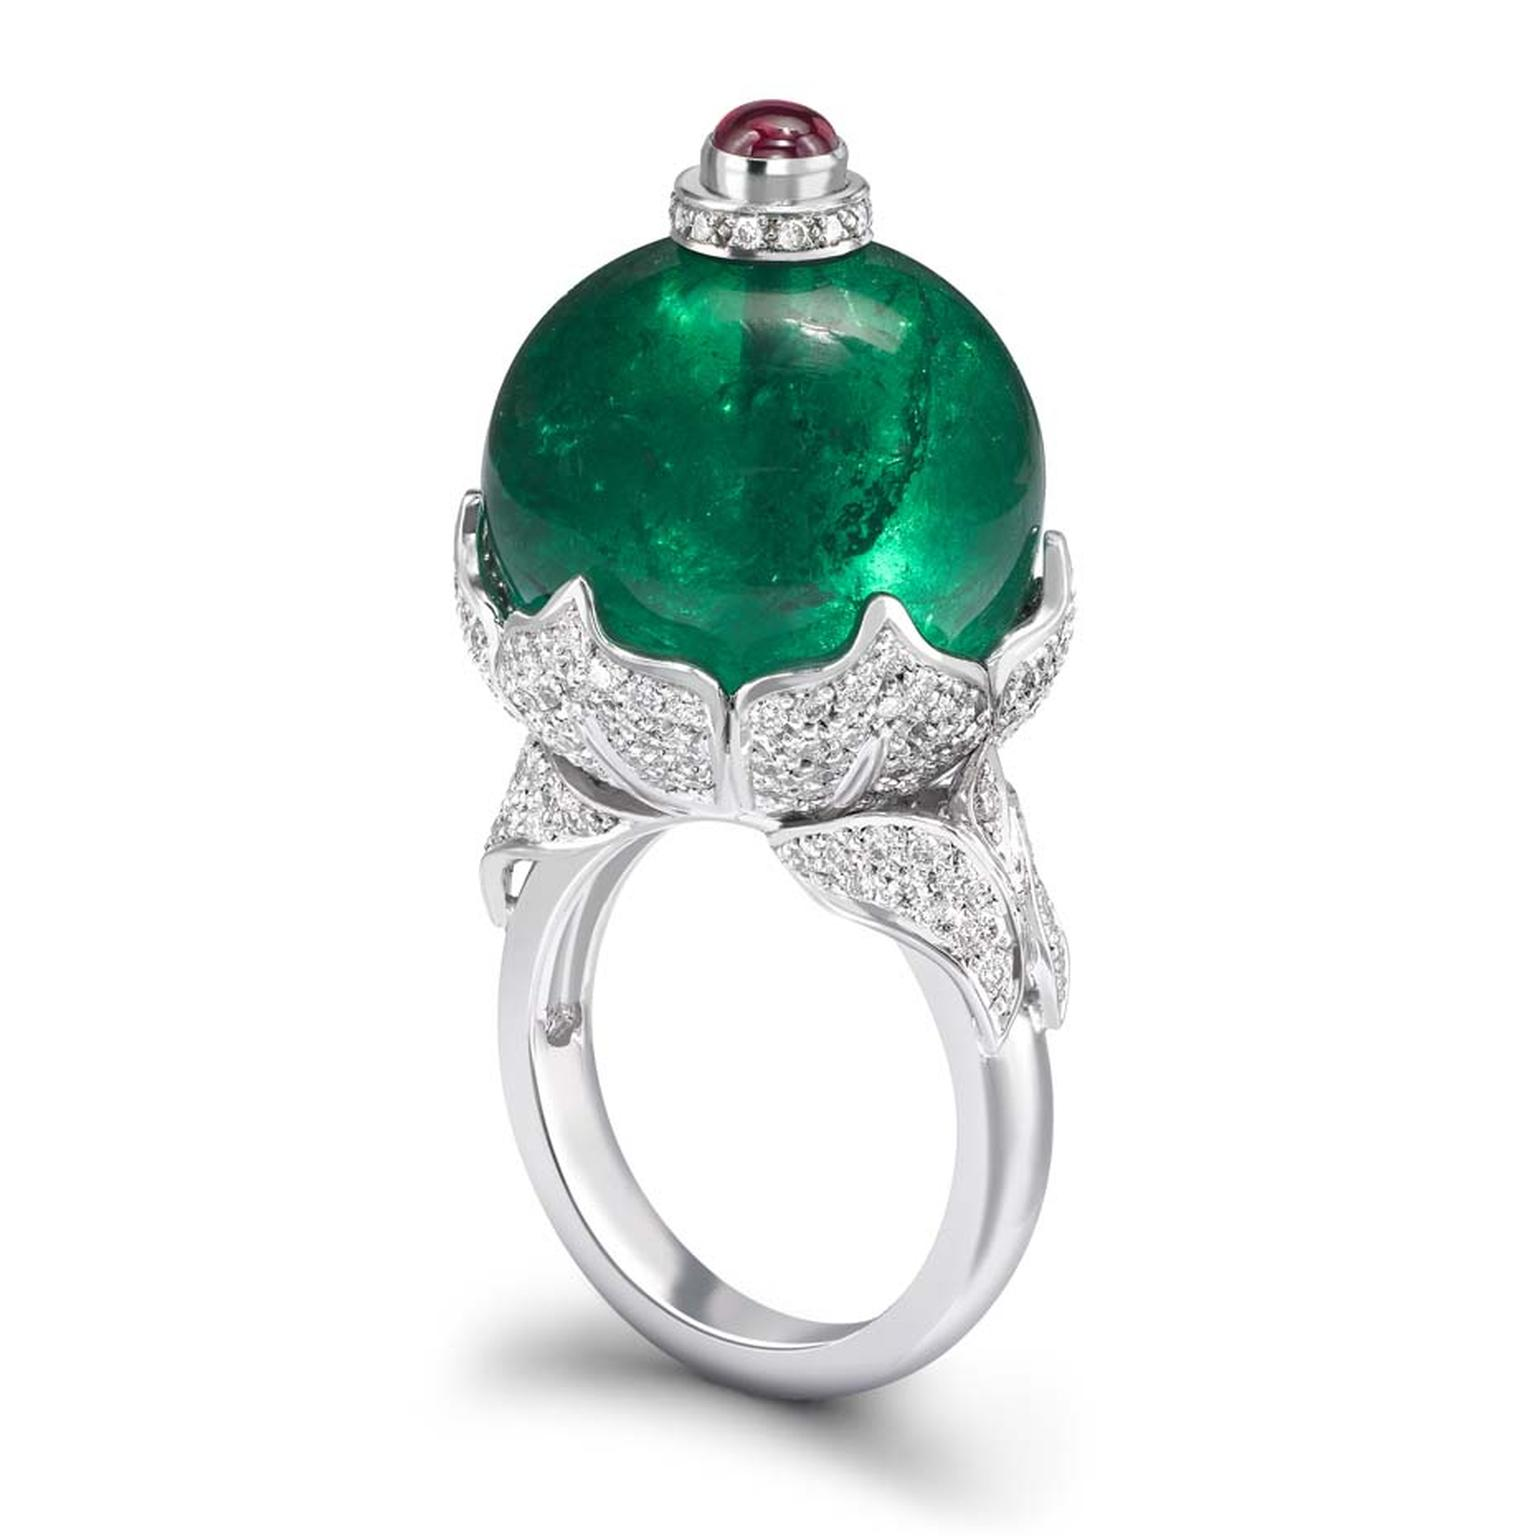 Theo Fennell white gold ring Theo Fennell white gold ring with a Gemfields emerald bead (38.70ct) surrounded by pavé diamonds and topped with a ruby. a Gemfields Emerald bead (38.70ct) surrounded by pavé diamonds and topped with a ruby.